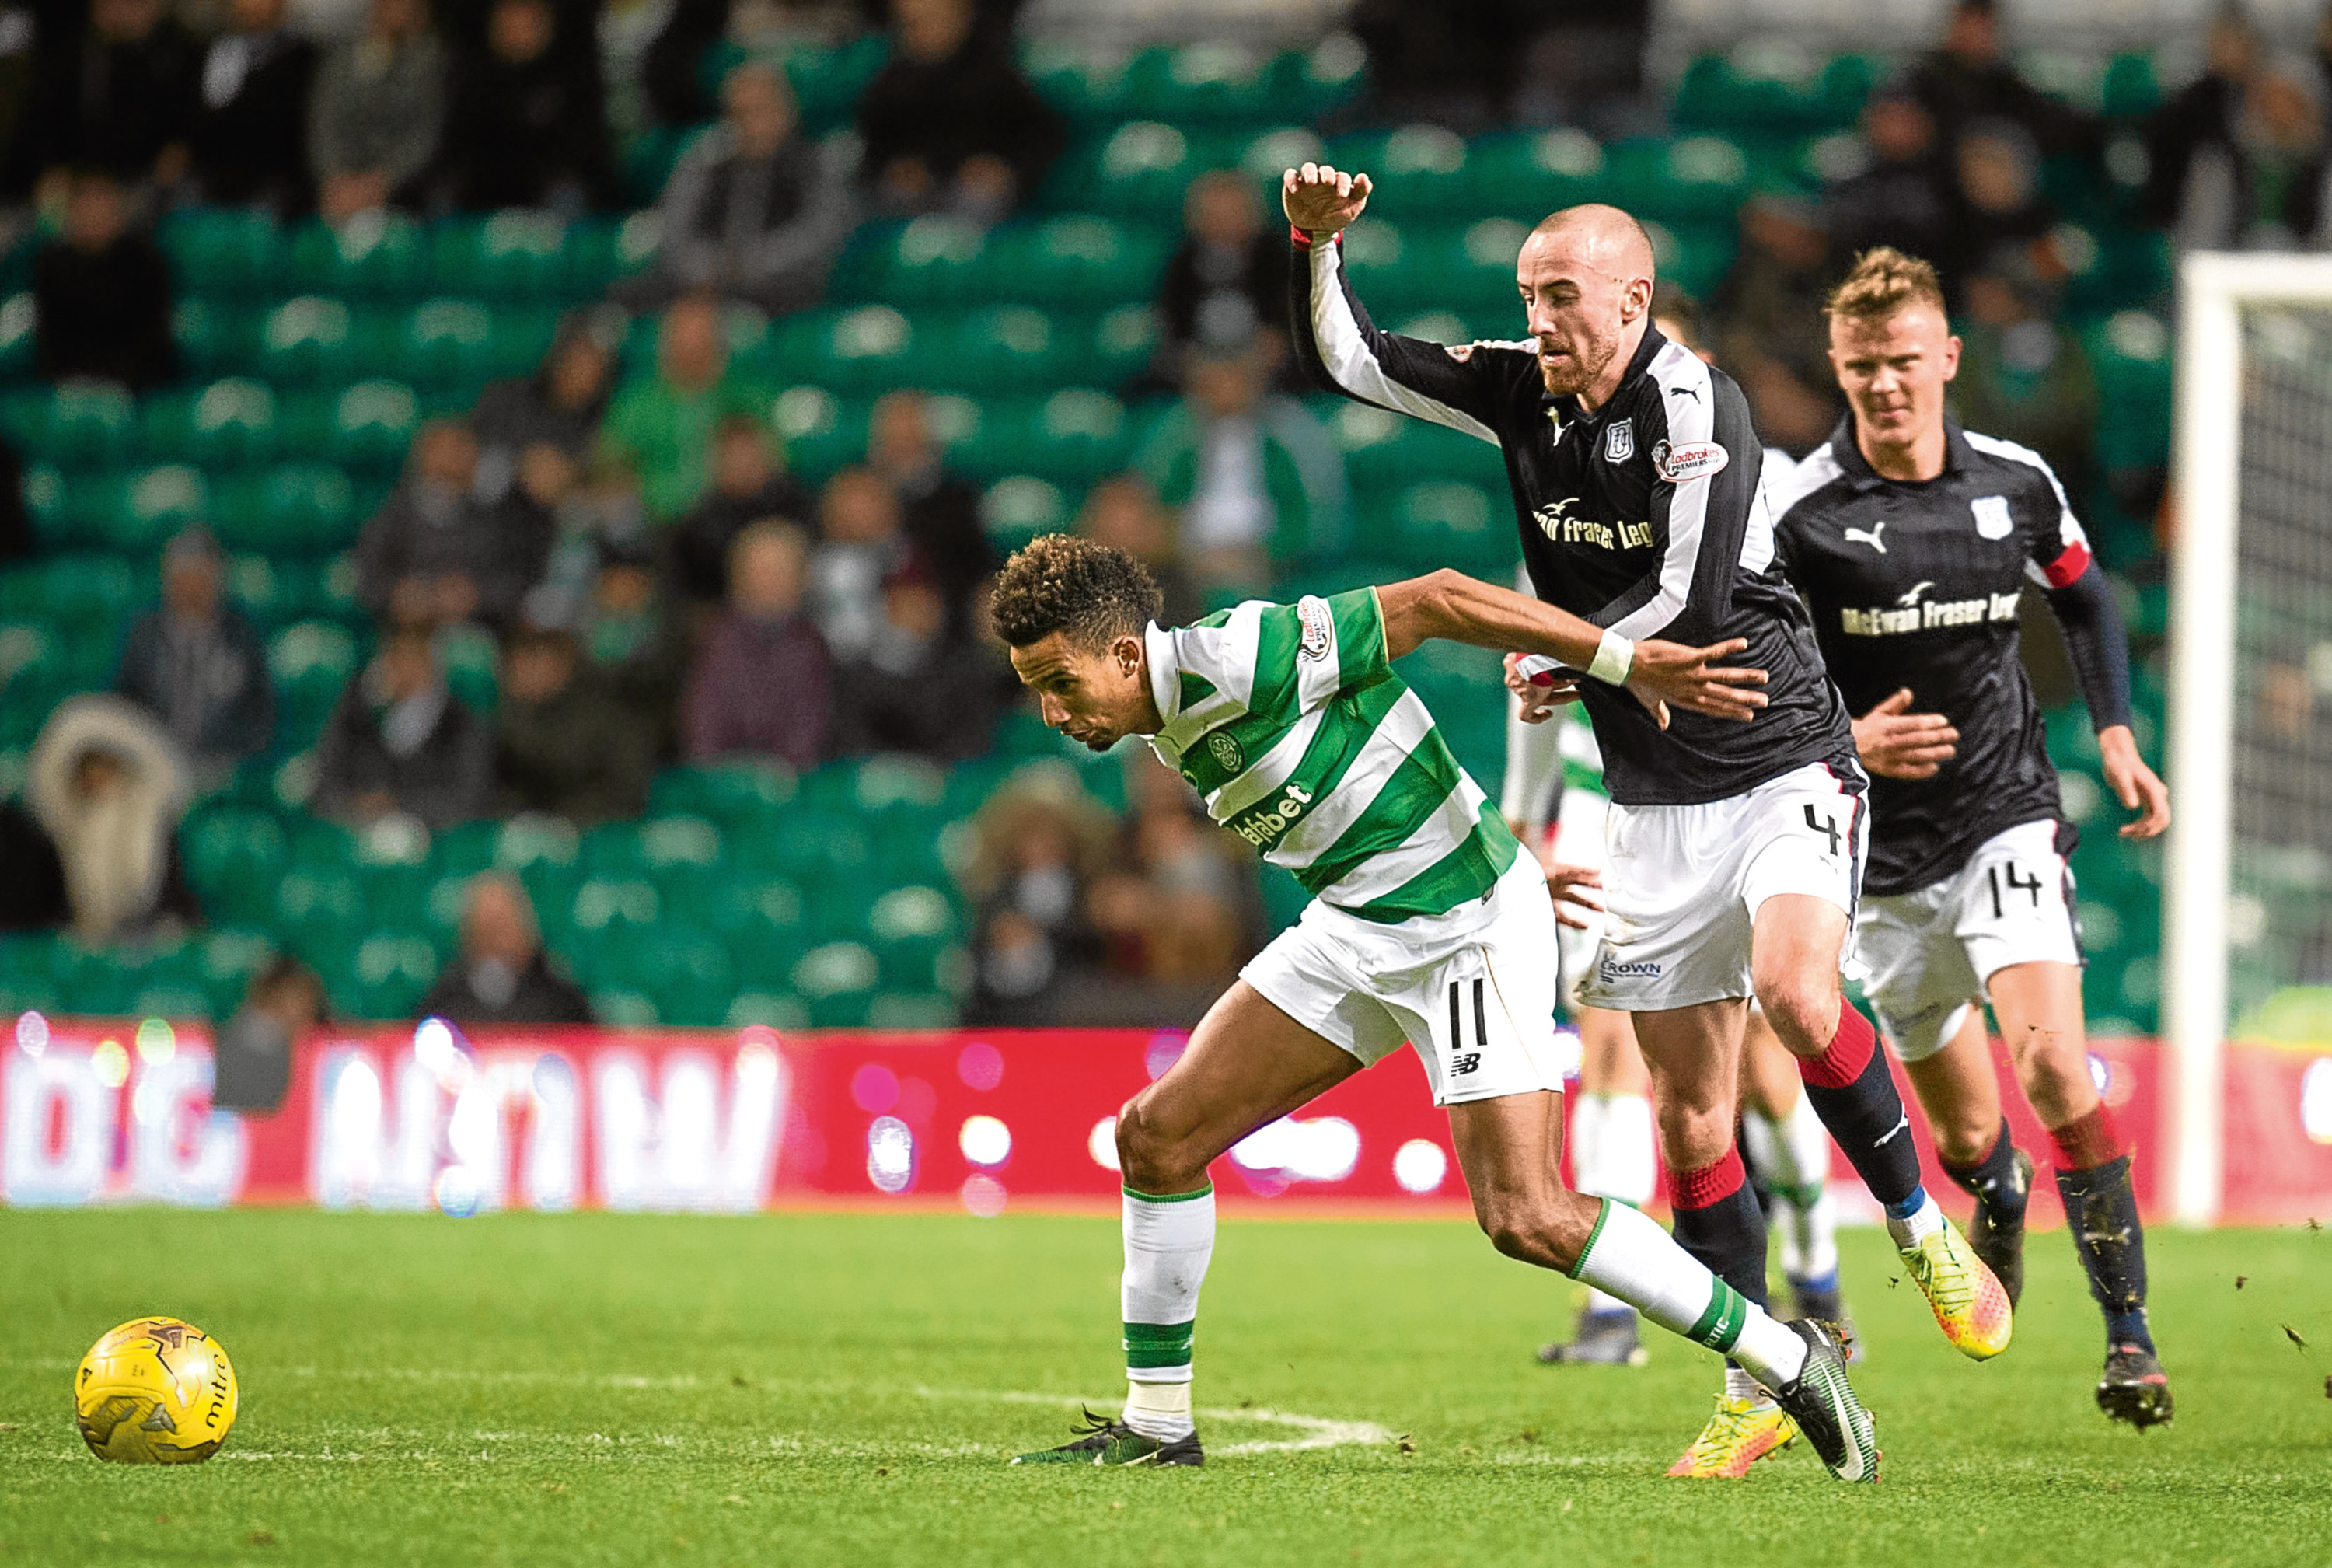 James Vincent pays close attention to Celtic's Scott Sinclair in Dundee's 2-1 loss at Parkhead last Saturday.